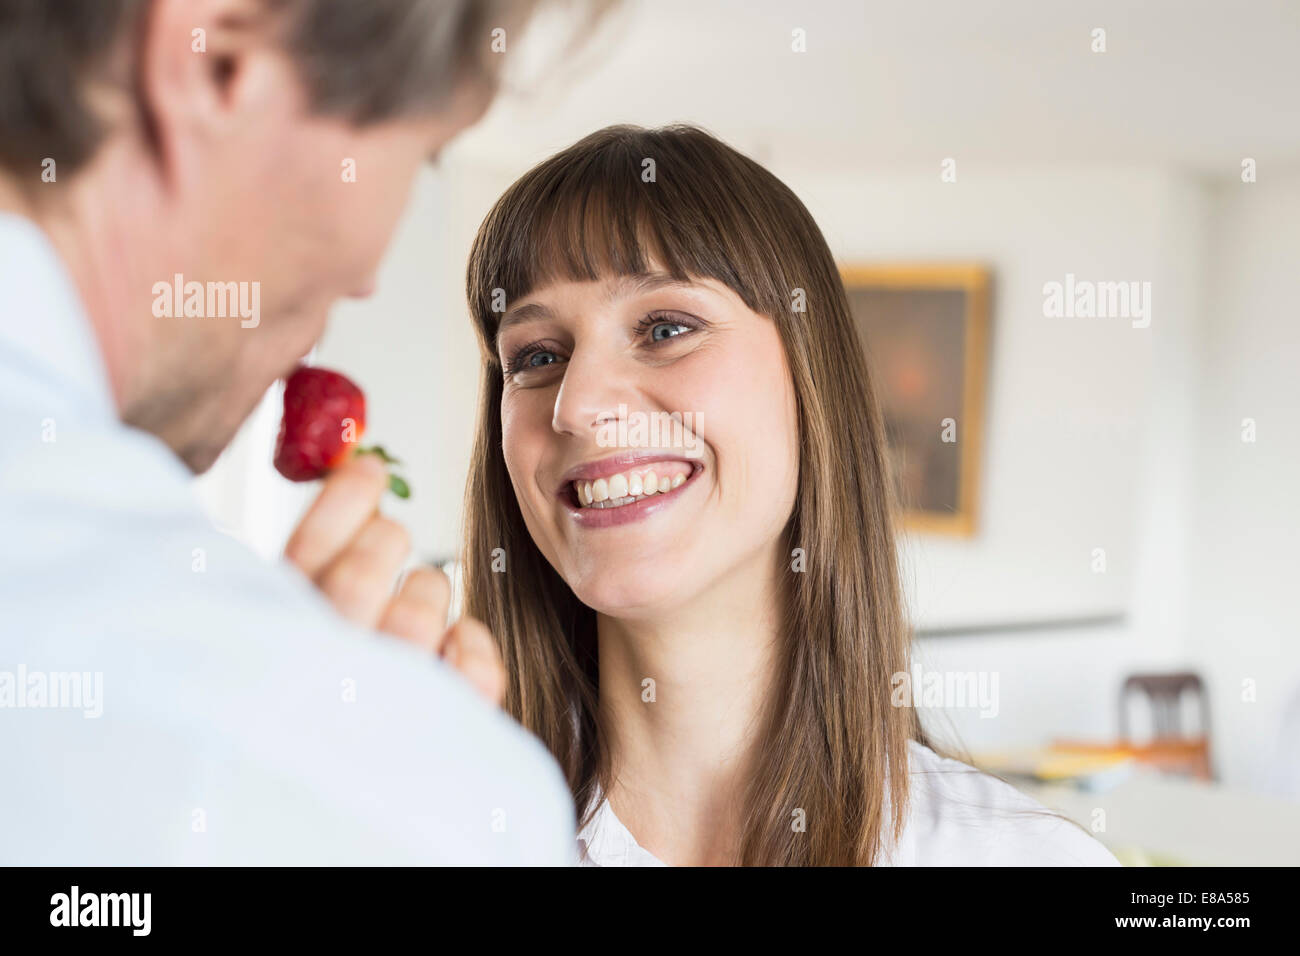 Mid adult woman feeding strawberry to mature man, smiling - Stock Image